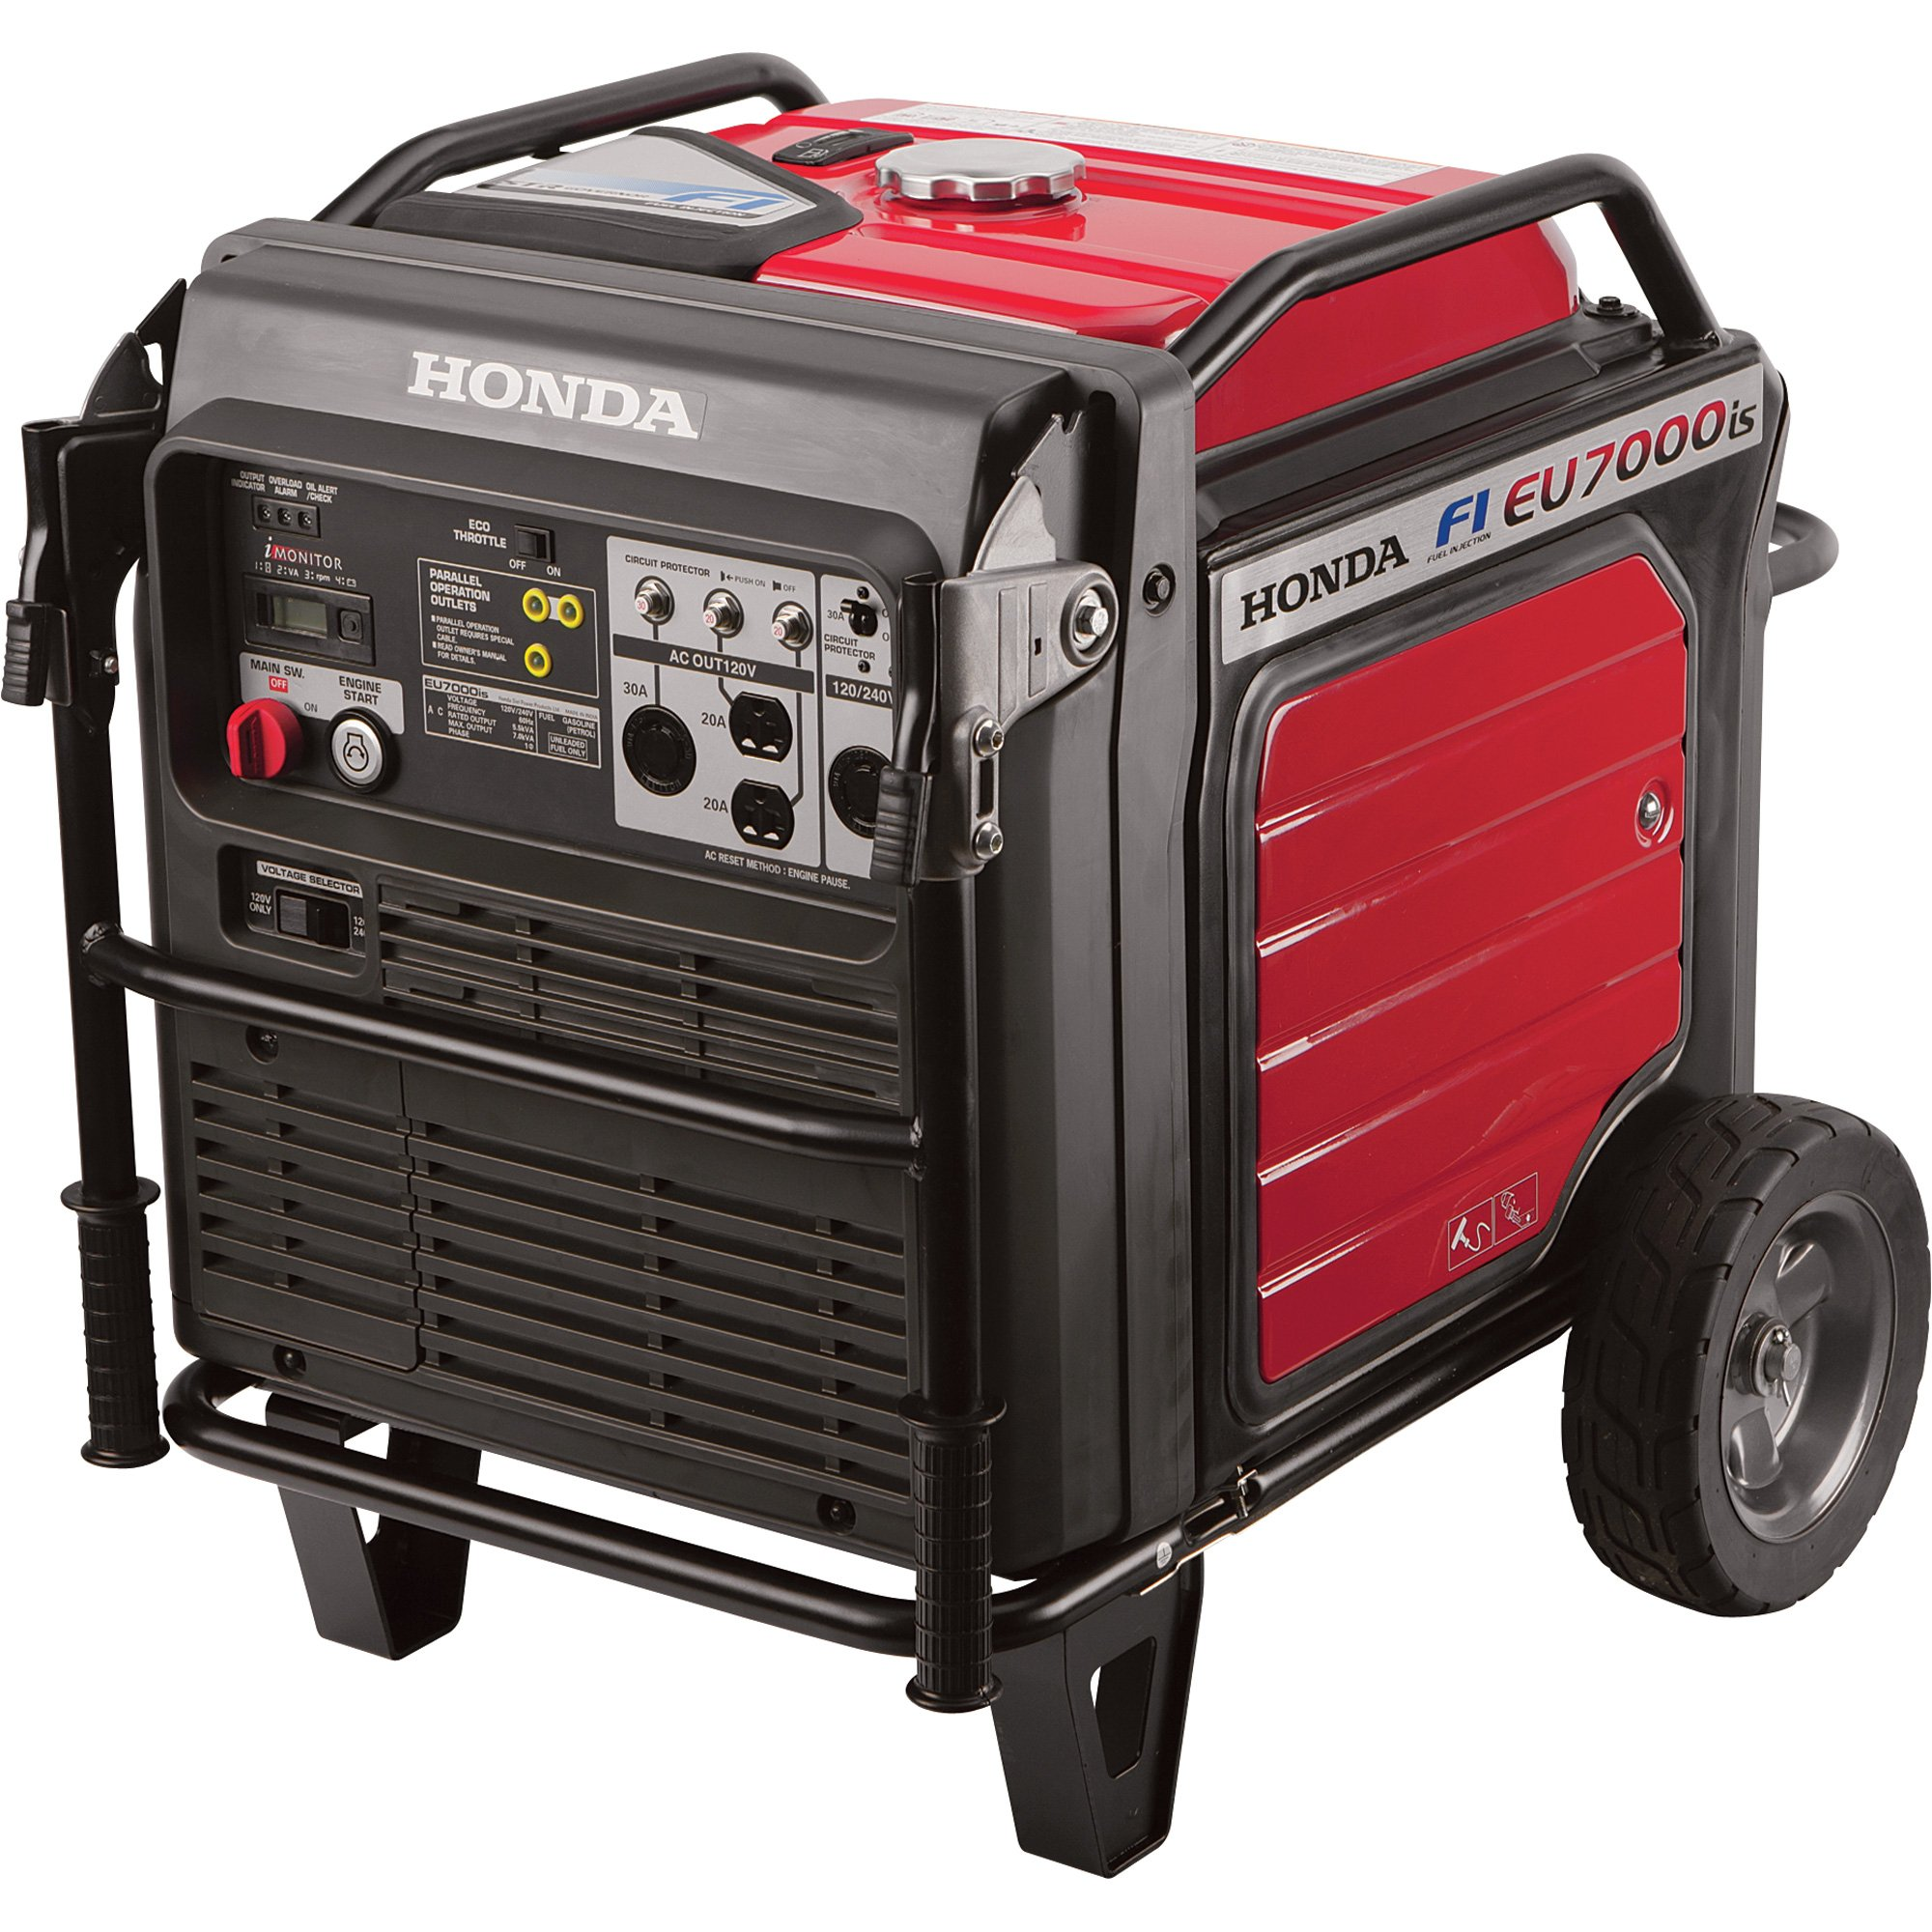 Honda Eu7000iat1 7,000 Watt Super Quiet Portable Inverter